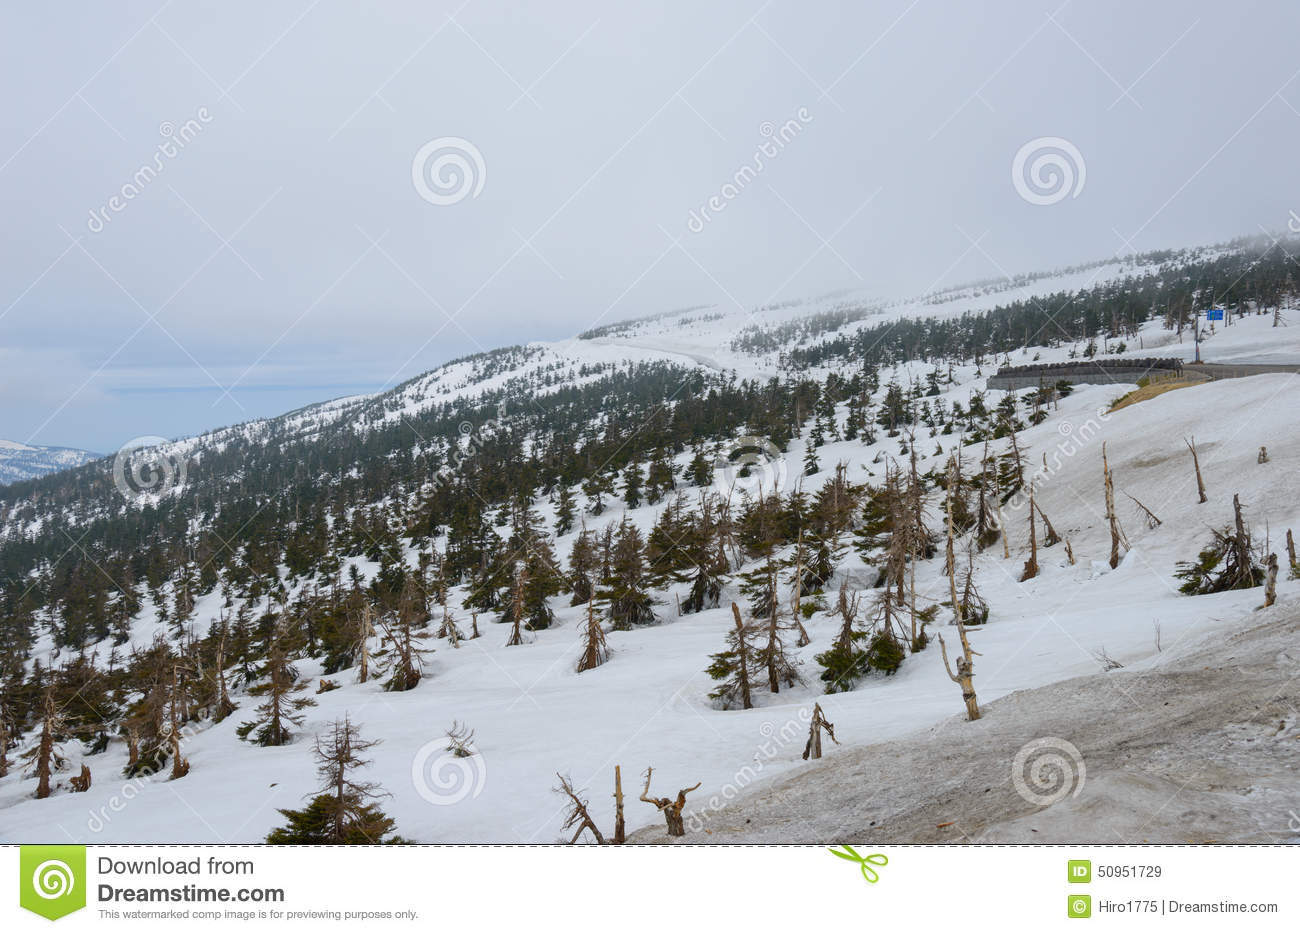 hachimantai aspite line in early spring stock image - image of